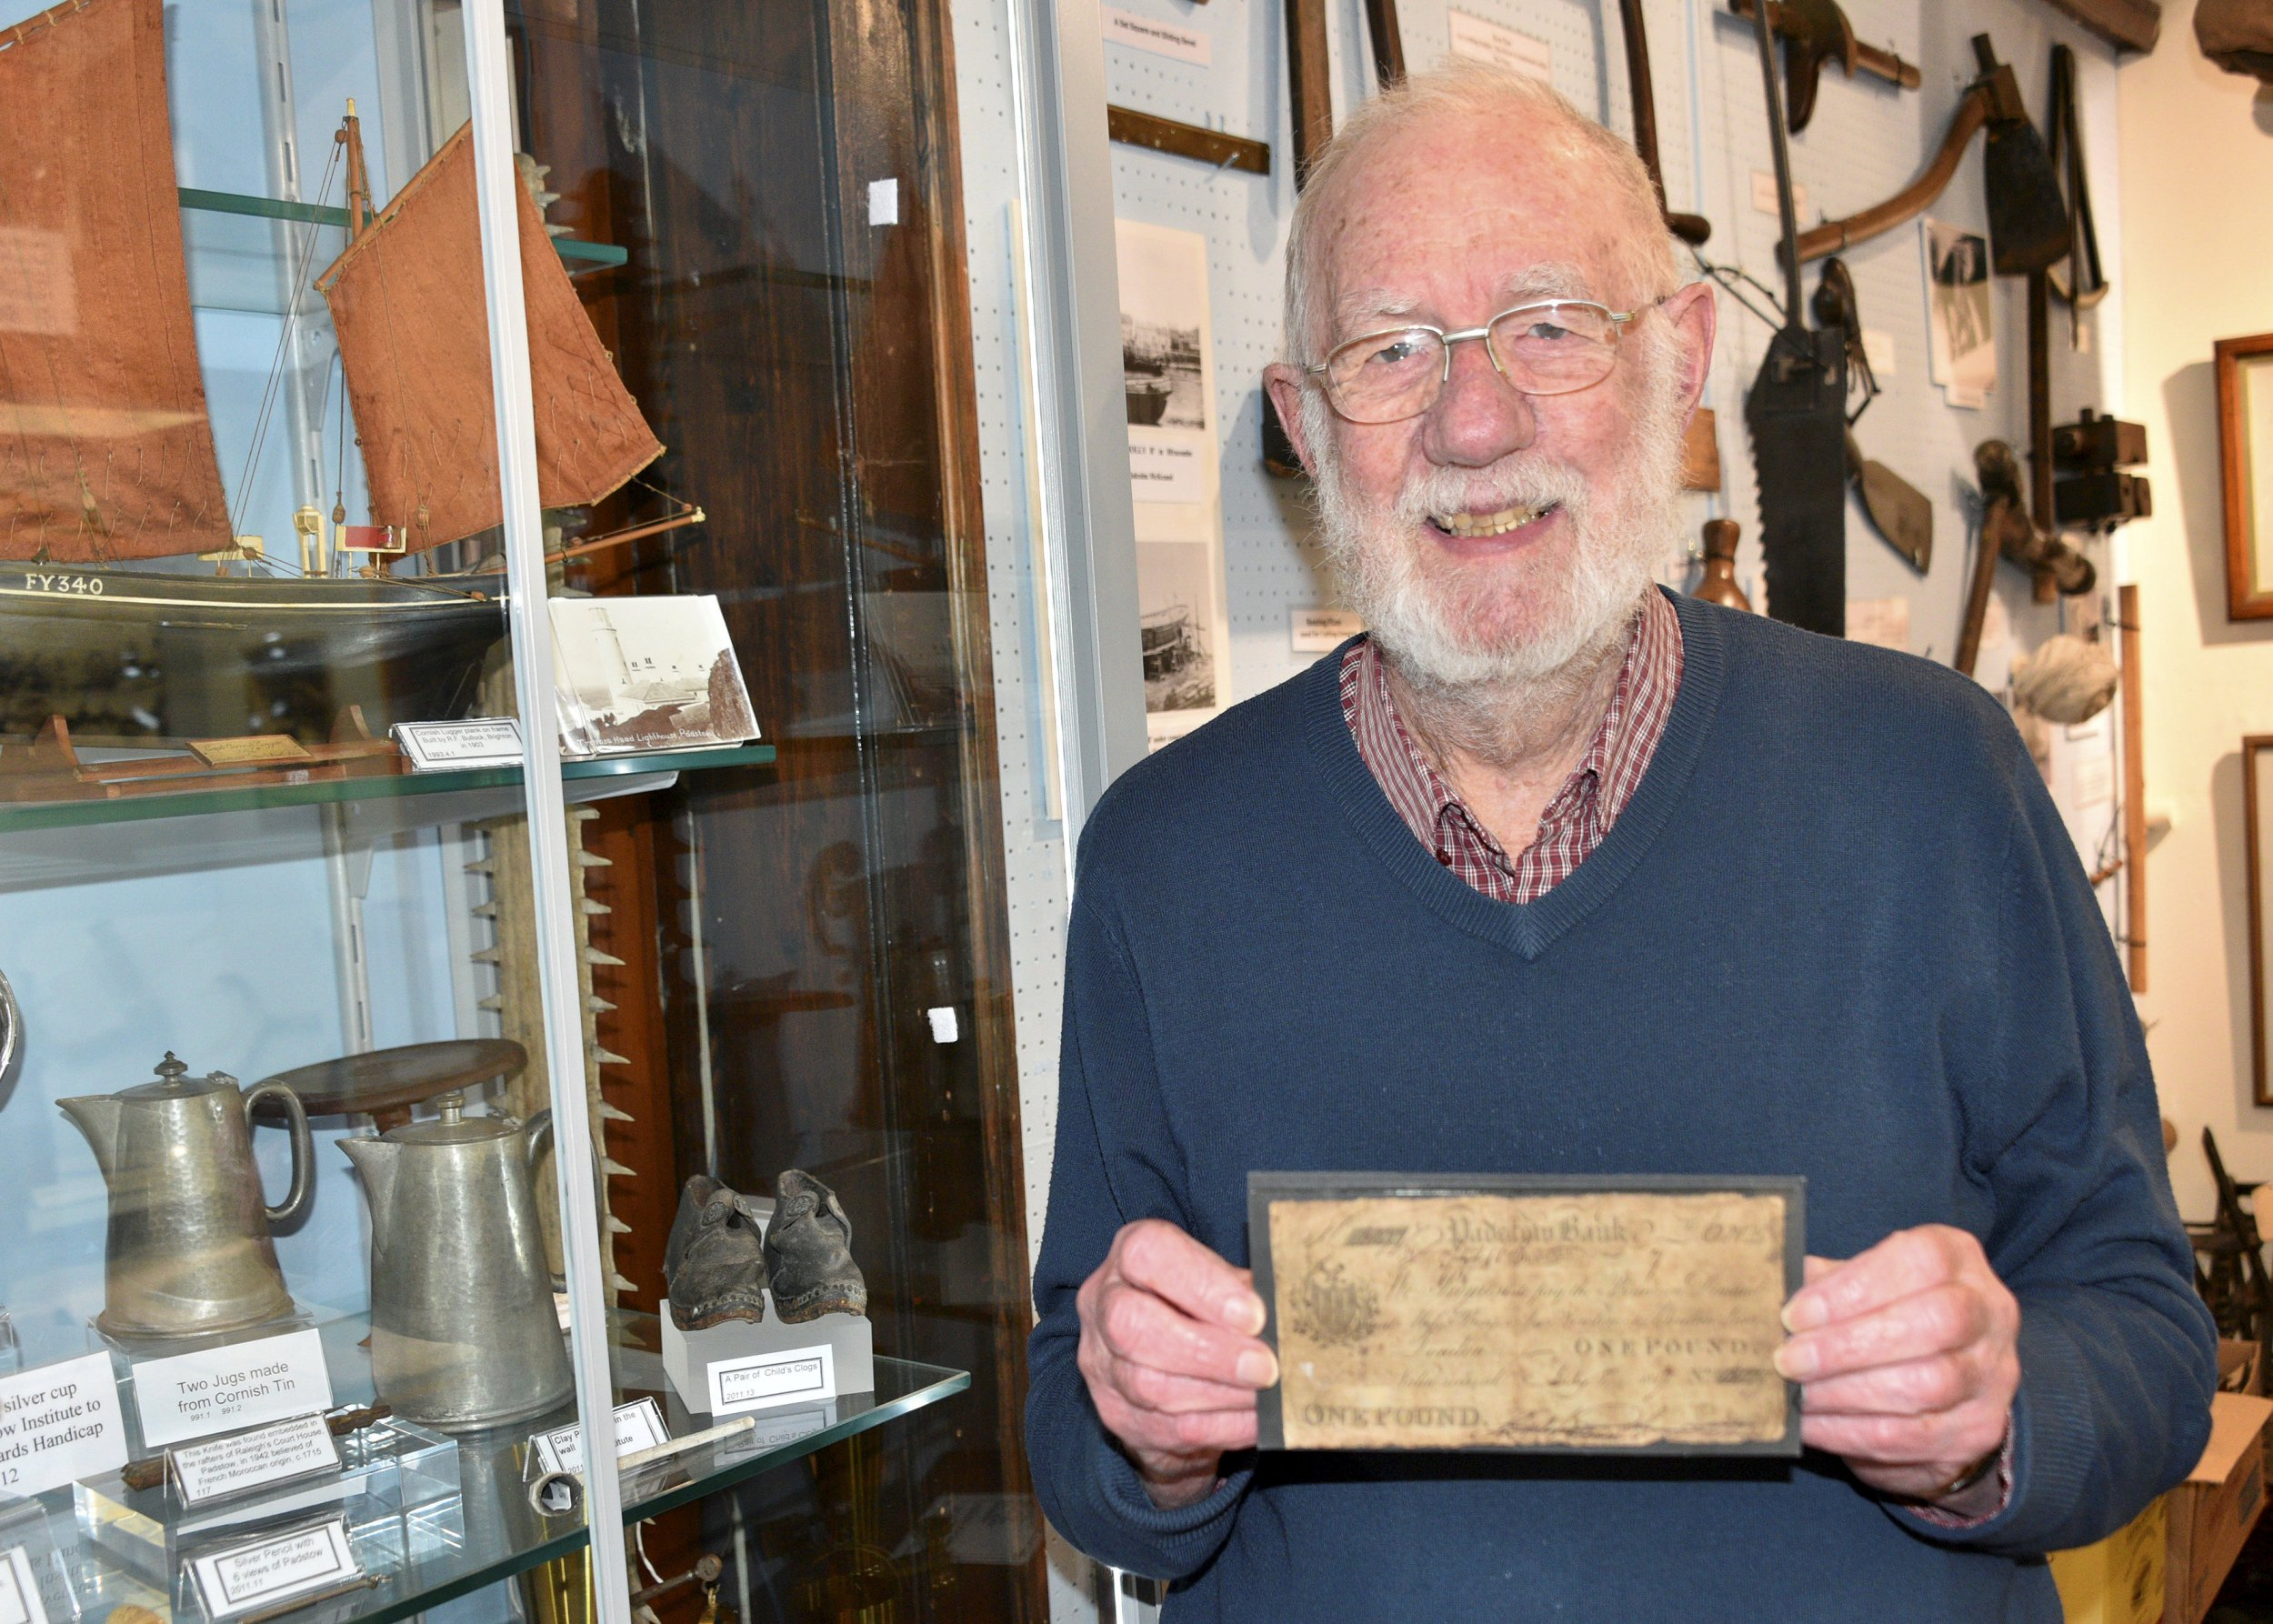 """John Buckingham with the 200 year old bank note. See SWNS story SWNOTE: Intrigue turned to astonishment for John Buckingham when an exotic letter which dropped on his doormat turned out to contain a rare 200-year-old Padstow Bank note stolen from a museum more than 30 years ago. The simple white envelope, dotted with colourful Caribbean stamps, had no return address and was addressed in handwriting to the care of the Padstow Museum. As chairman, Mr Buckingham had carefully opened the correspondence, wondering who was reaching out to their little collection of antiquities from across the ocean. """"I was very surprised,"""" he said. """"When I saw the envelope and the postmark I first thought, 'who is writing to me from St Lucia?' I just opened it and there was no covering letter or anything. There was a plastic sleeve, like the type a collector might use, and inside was this £1 note."""""""